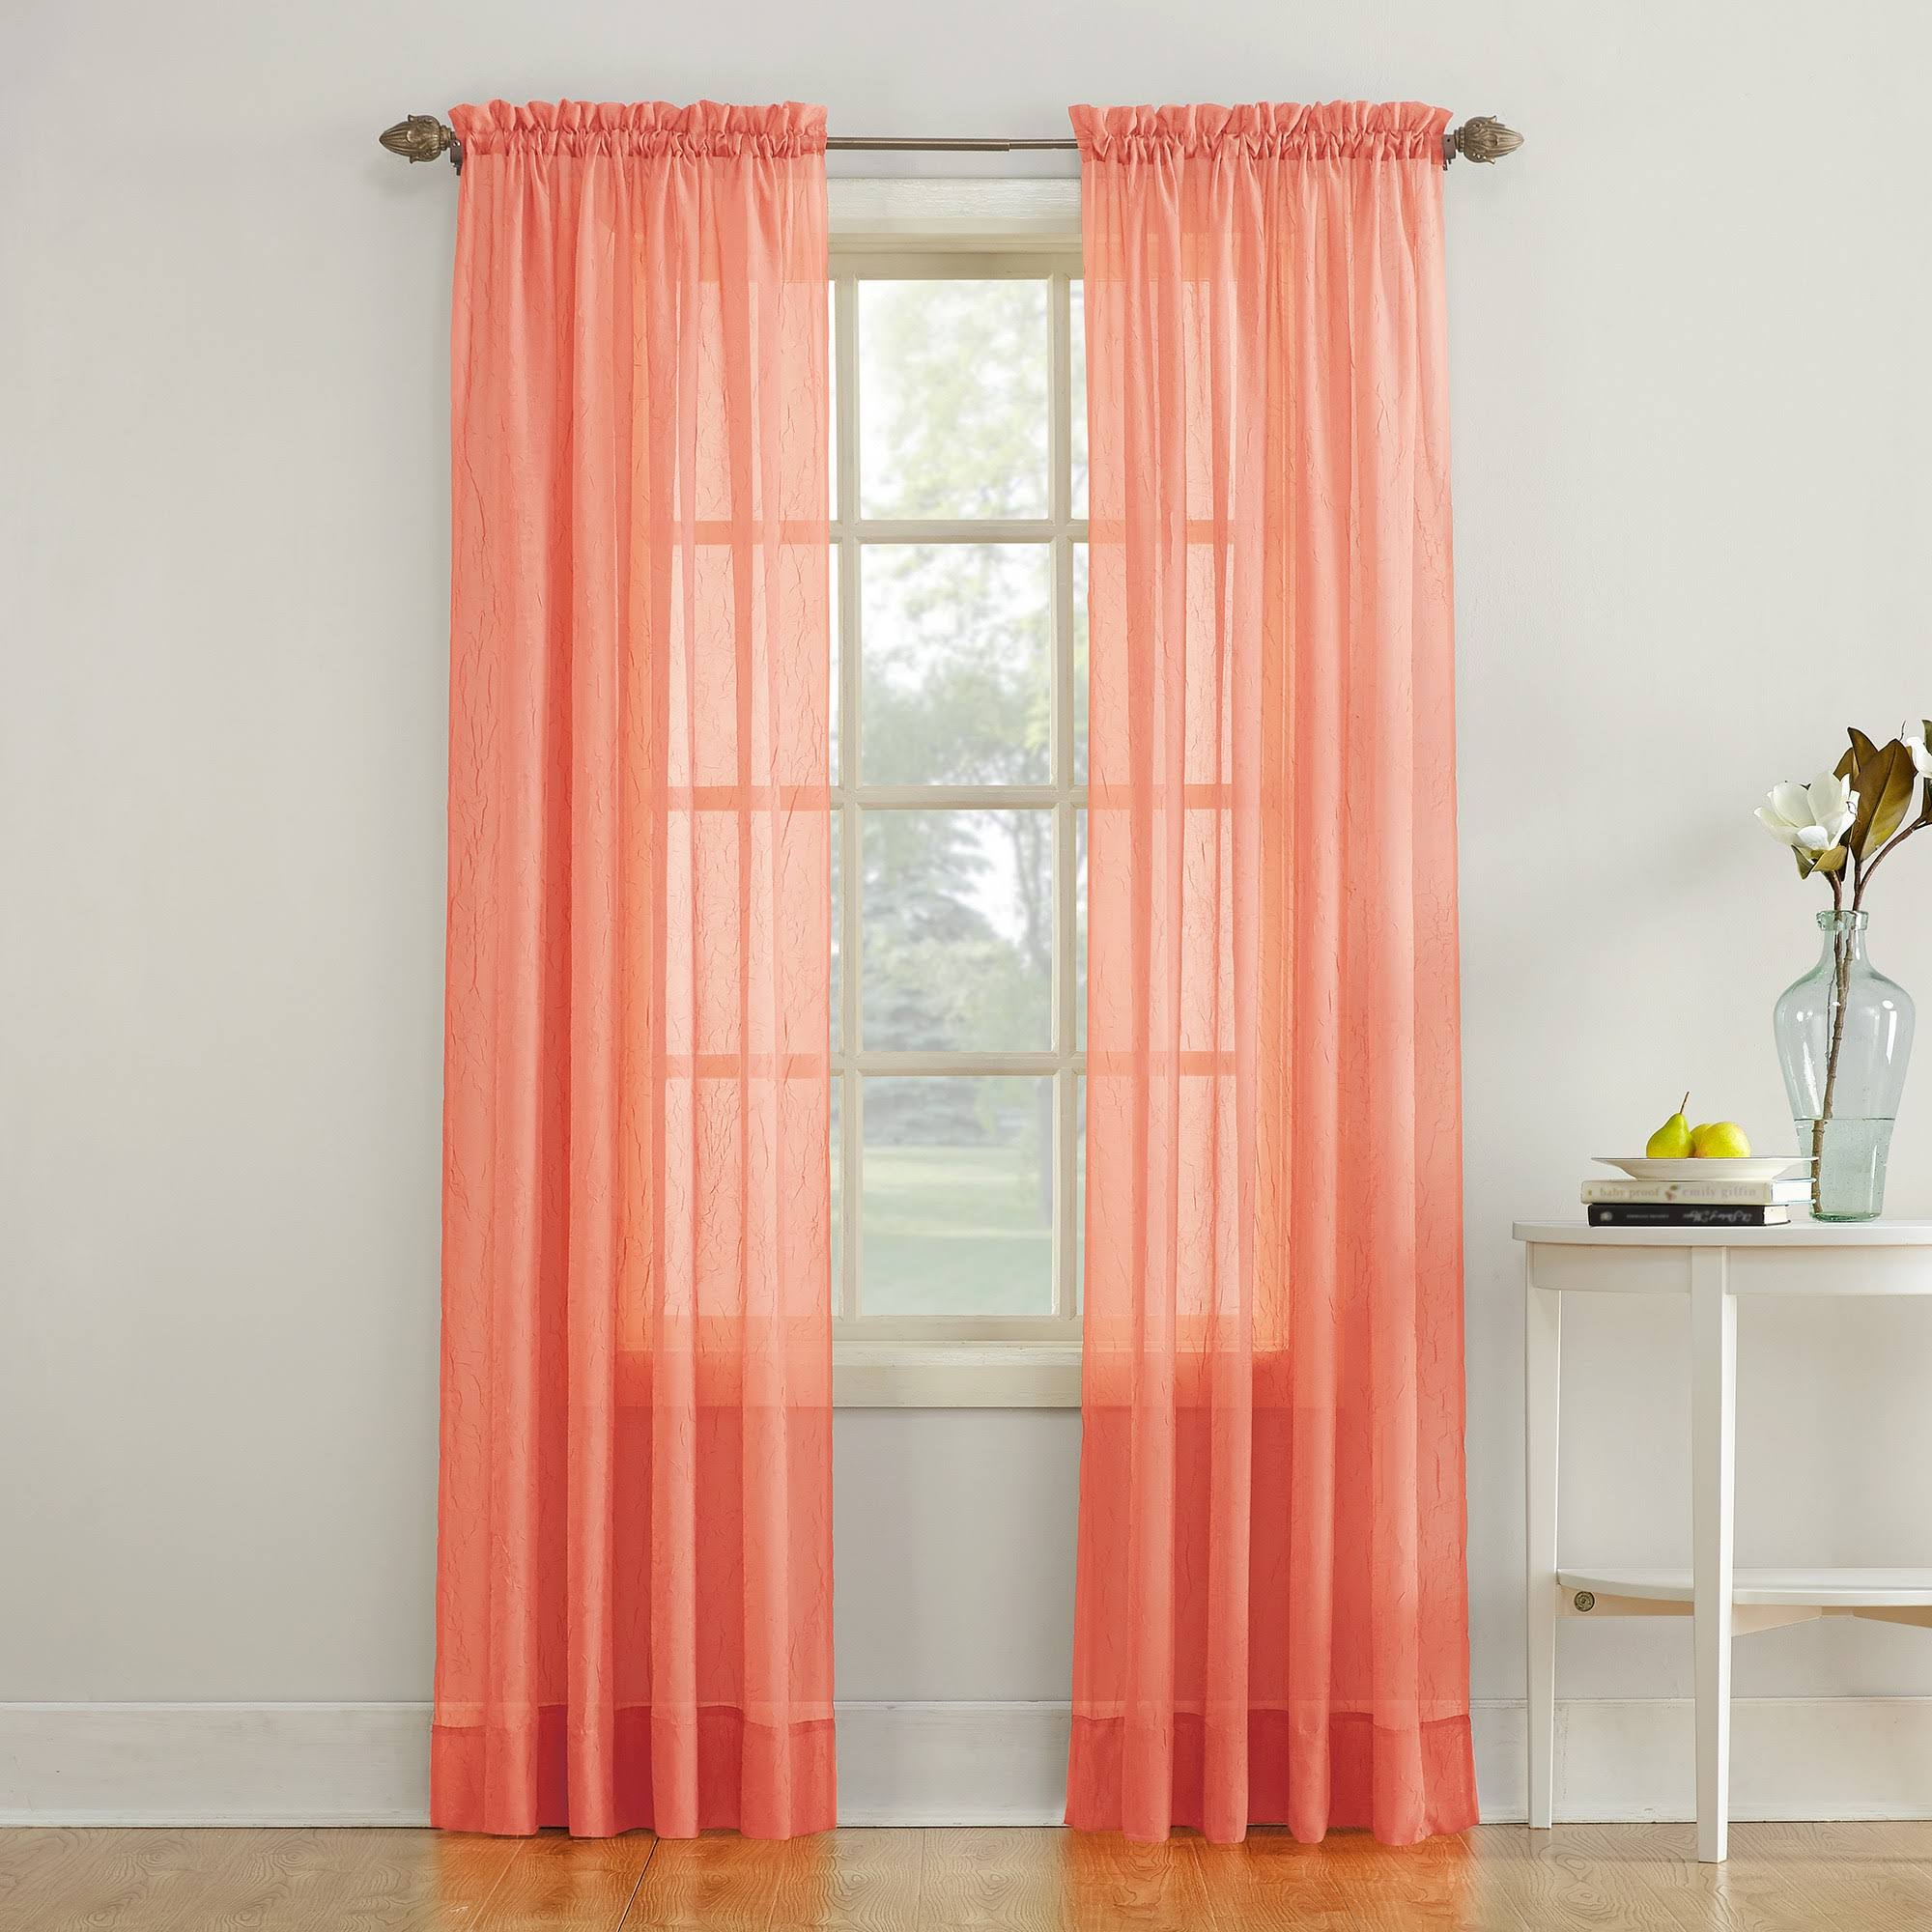 "No. 918 Erica Crushed Texture Sheer Voile Curtain Panel, 51"" x 63"", Coral"